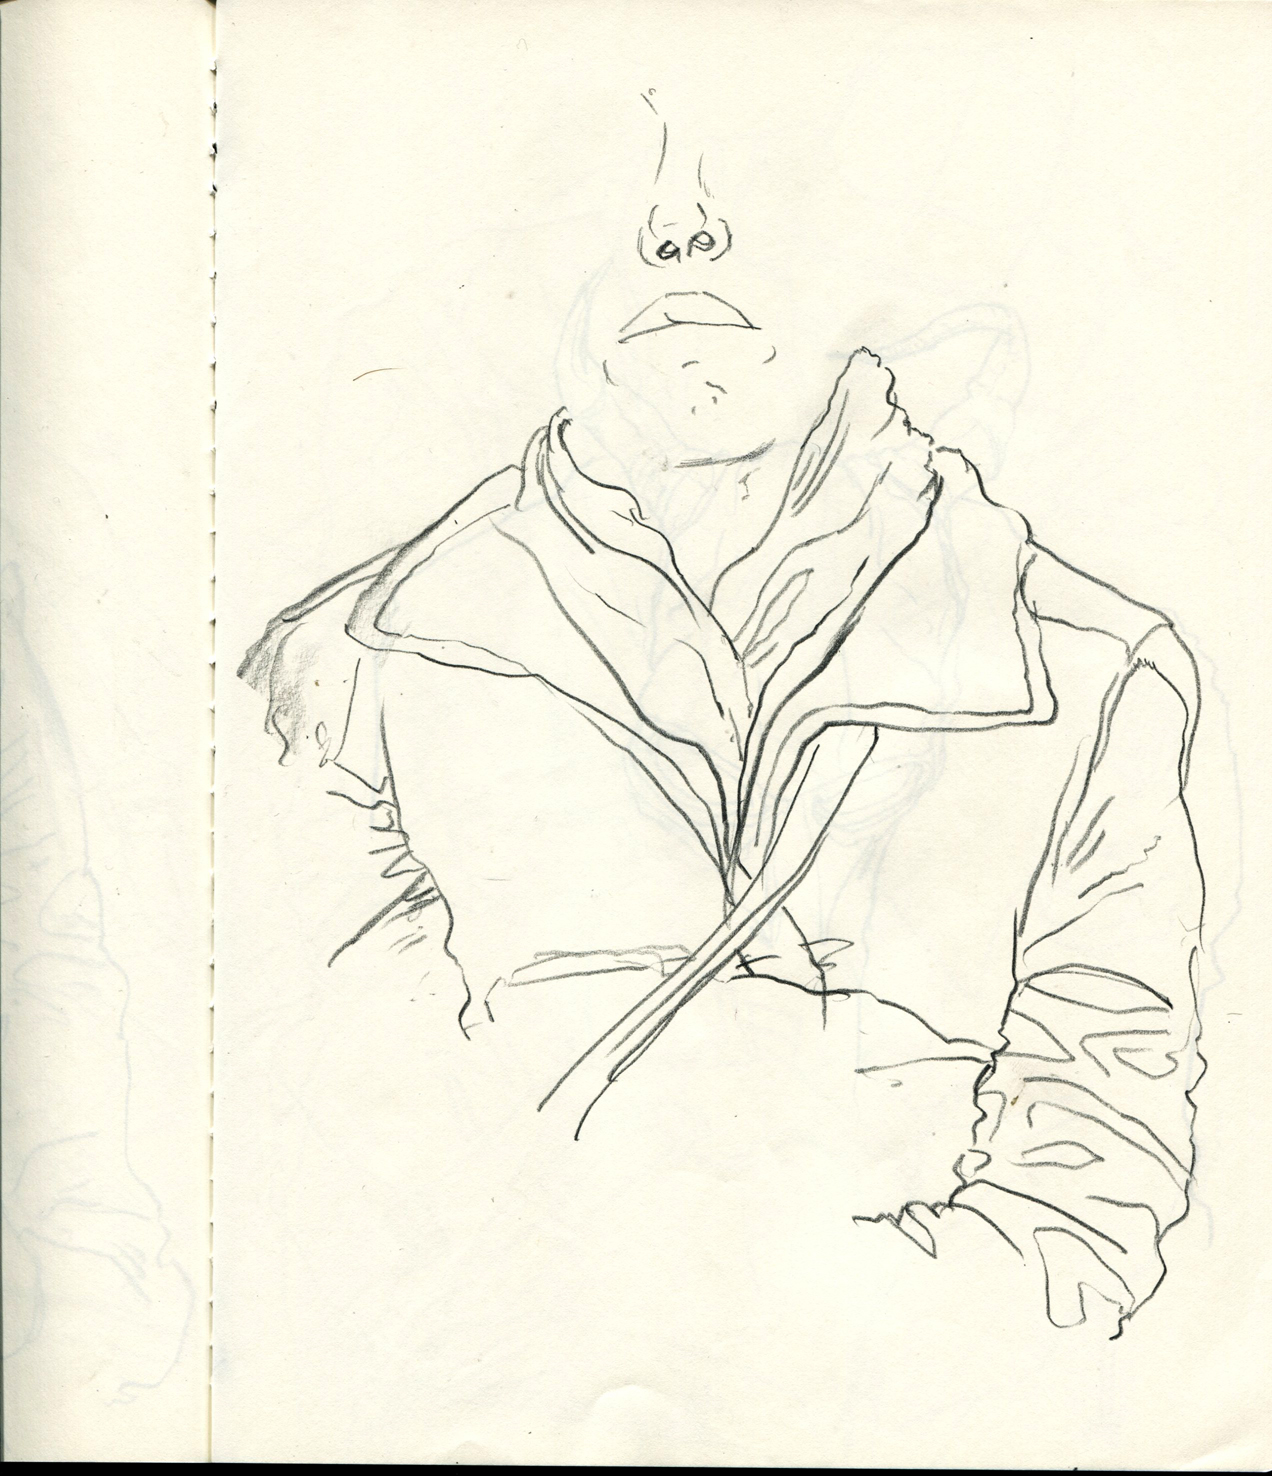 1272x1476 New York City Subway Drawings Of People On The Train Alex Ariza